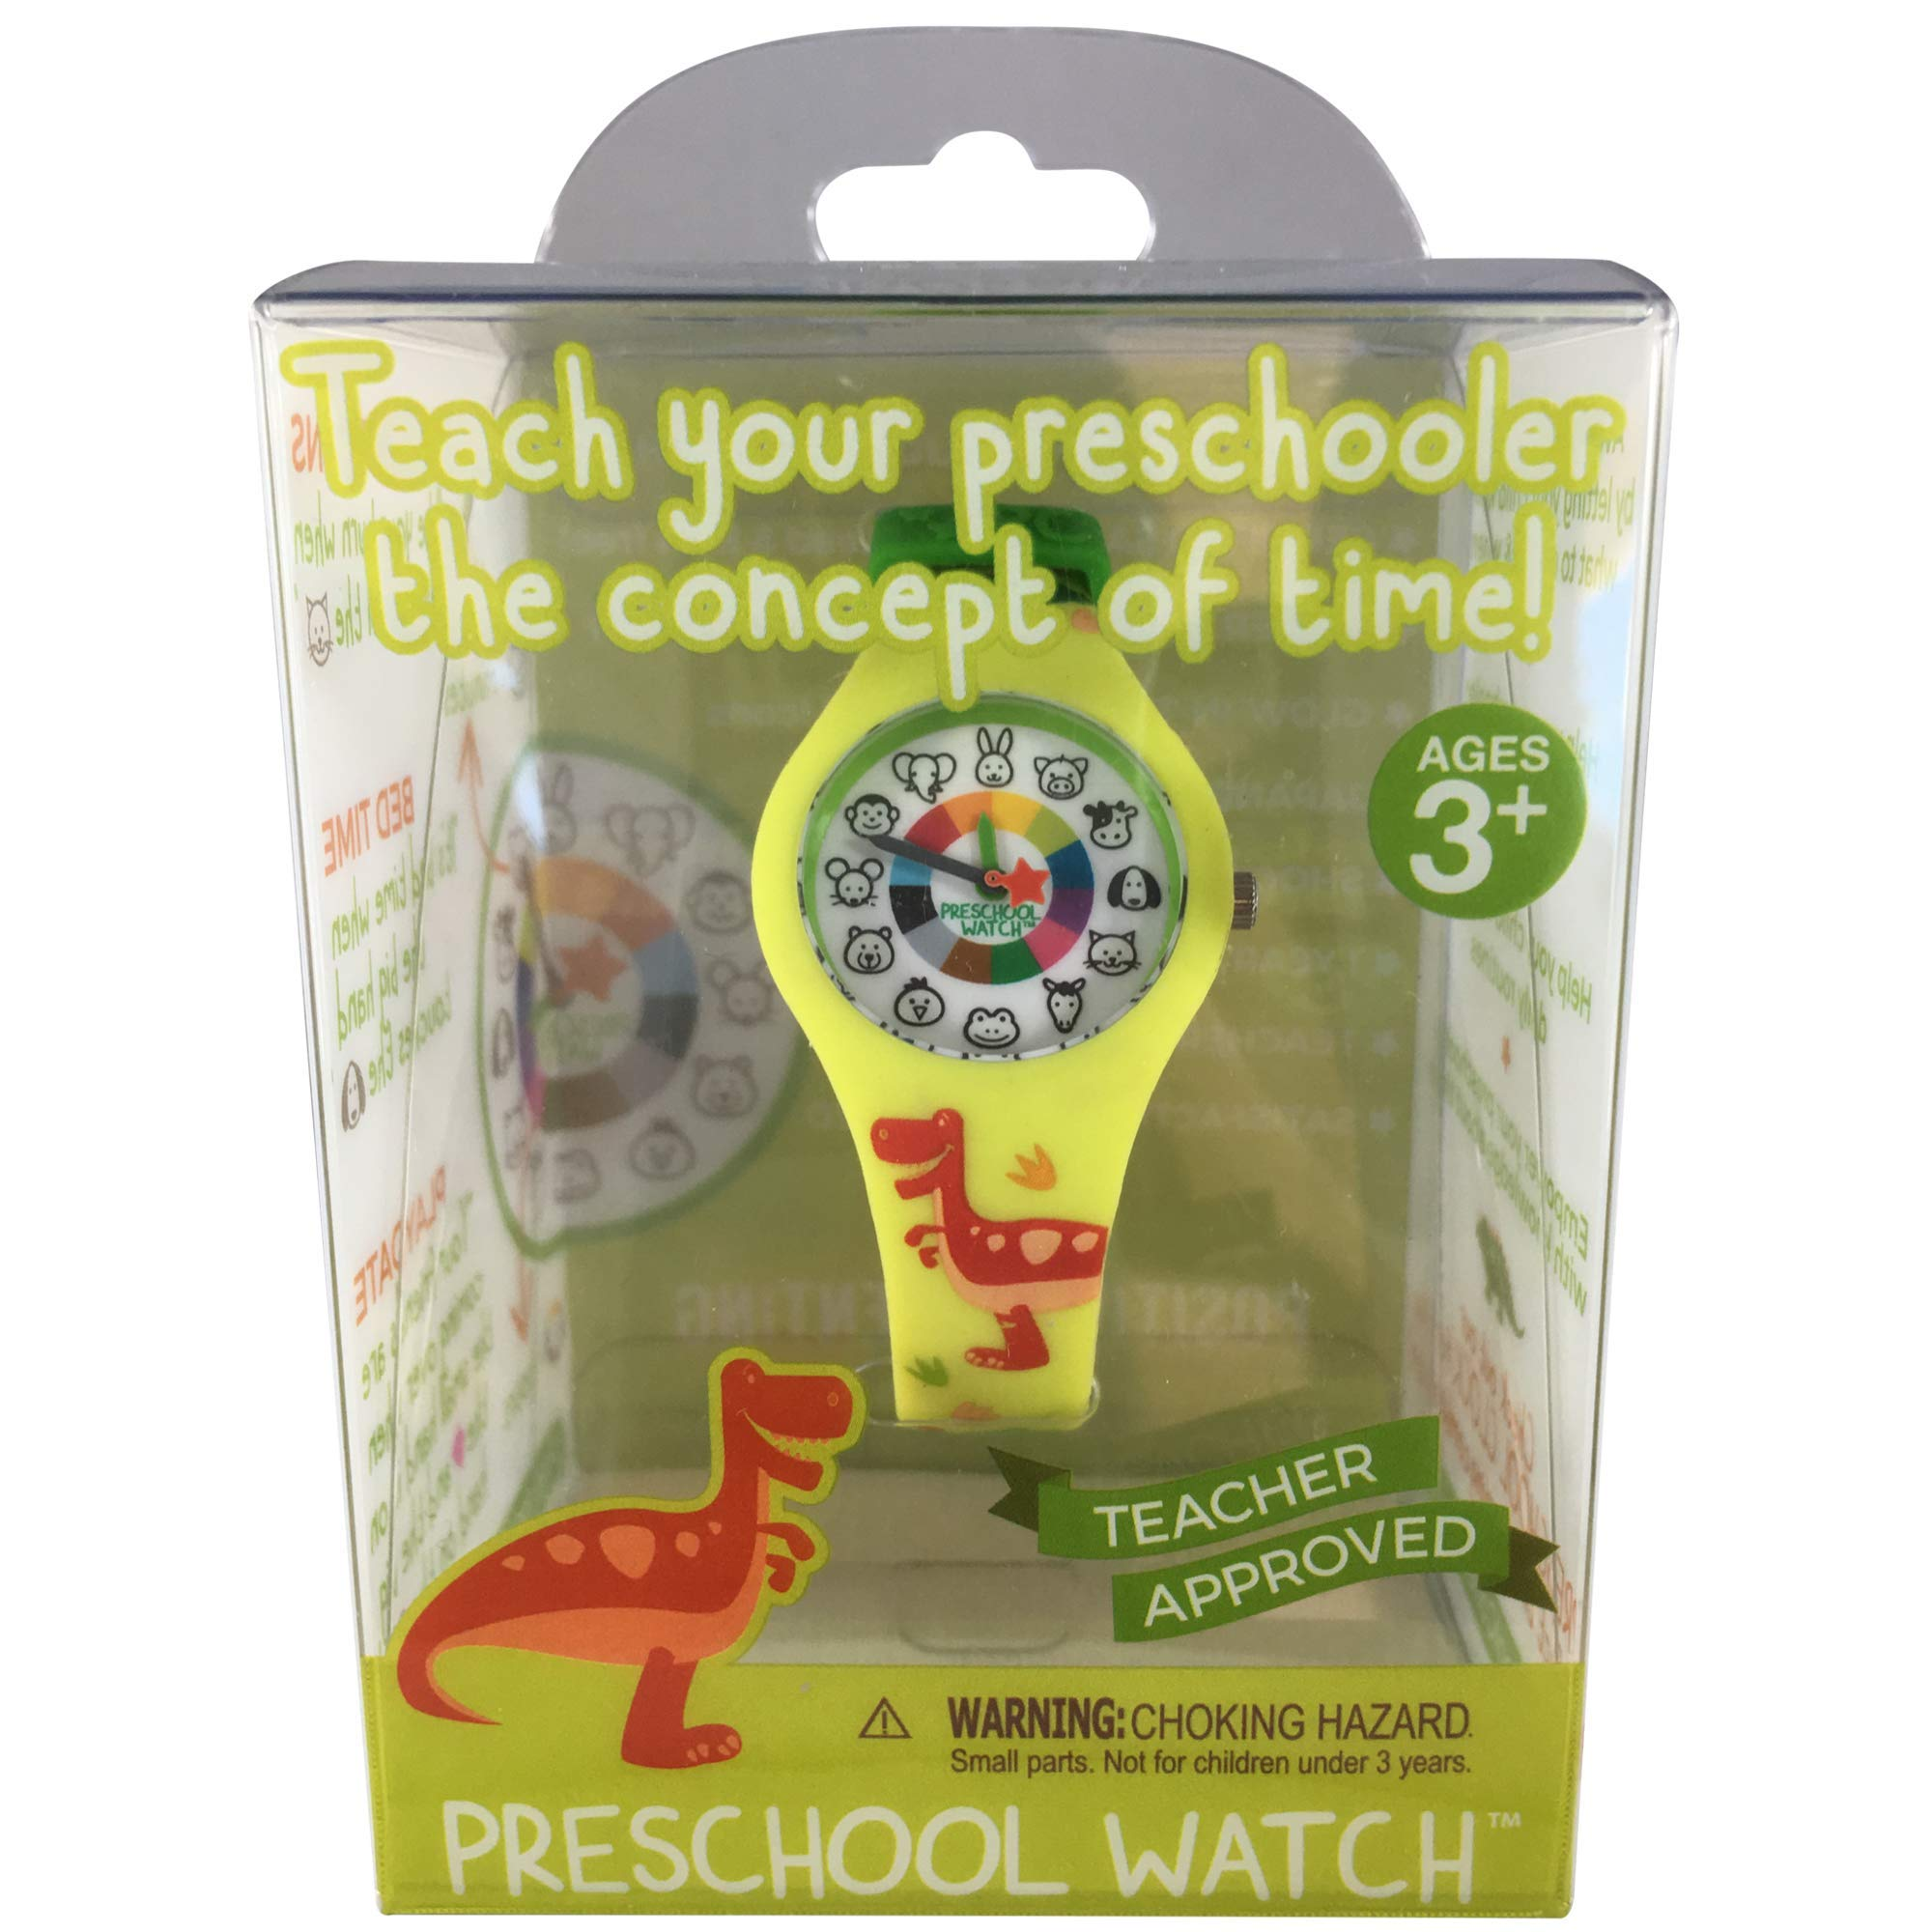 Dinosaur Preschool Watch - The Only Analog Kids Watch Preschoolers Understand! Quality Teaching time Silicone Watch with Glow-in-The-Dark Dial & Japan Movement by PRESCHOOL COLLECTION (Image #2)